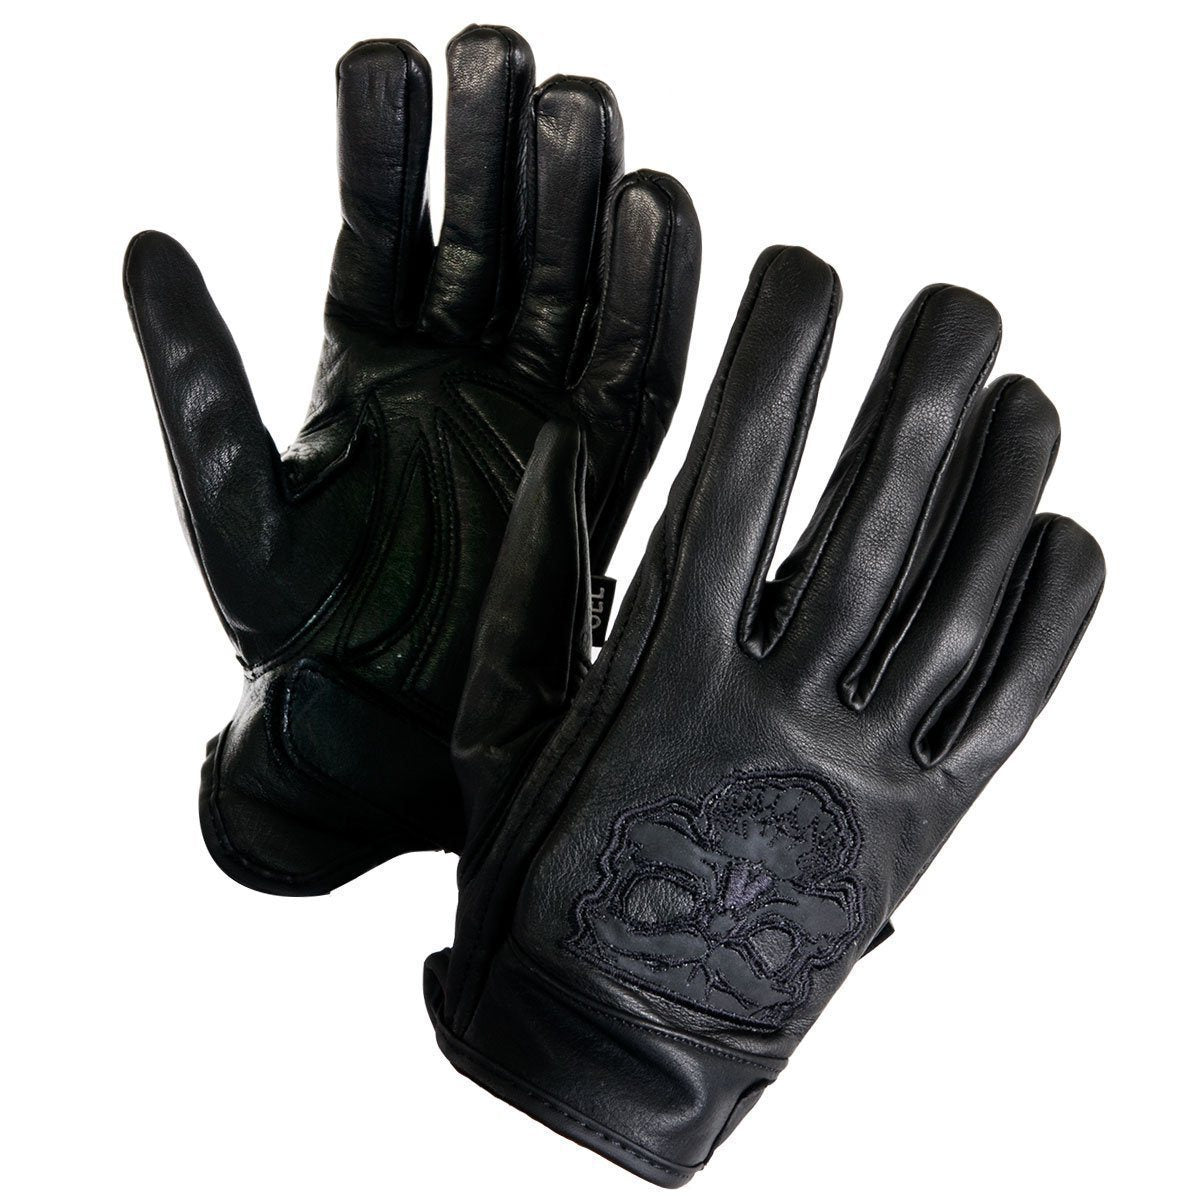 Xelement XS-7789 Men's Black Cowhide Leather Gloves with Reflective